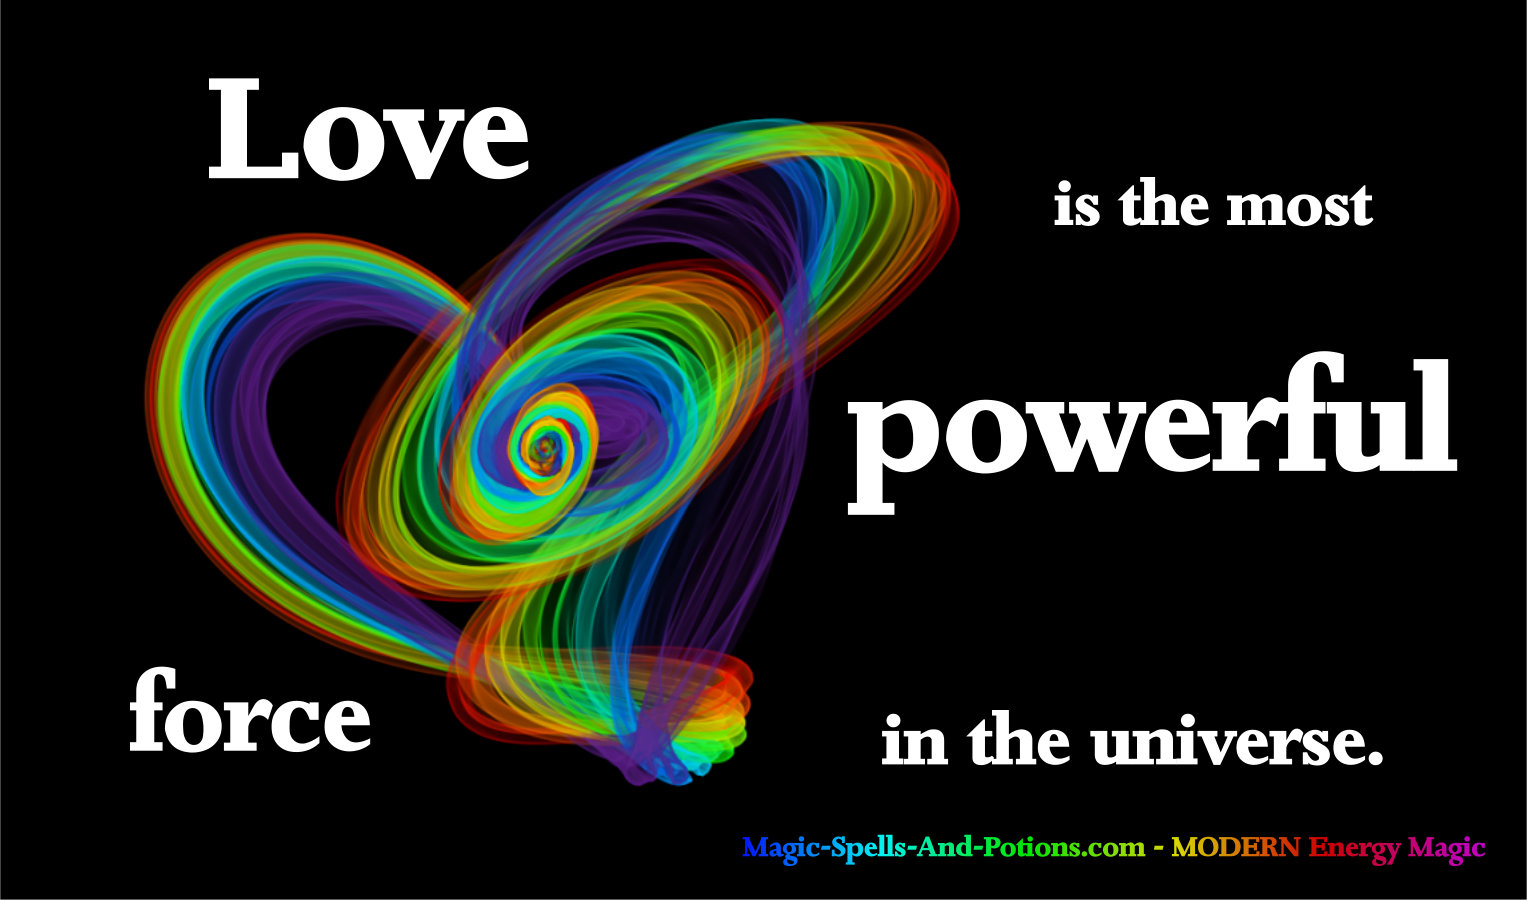 Love is the most powerful force in the universe.